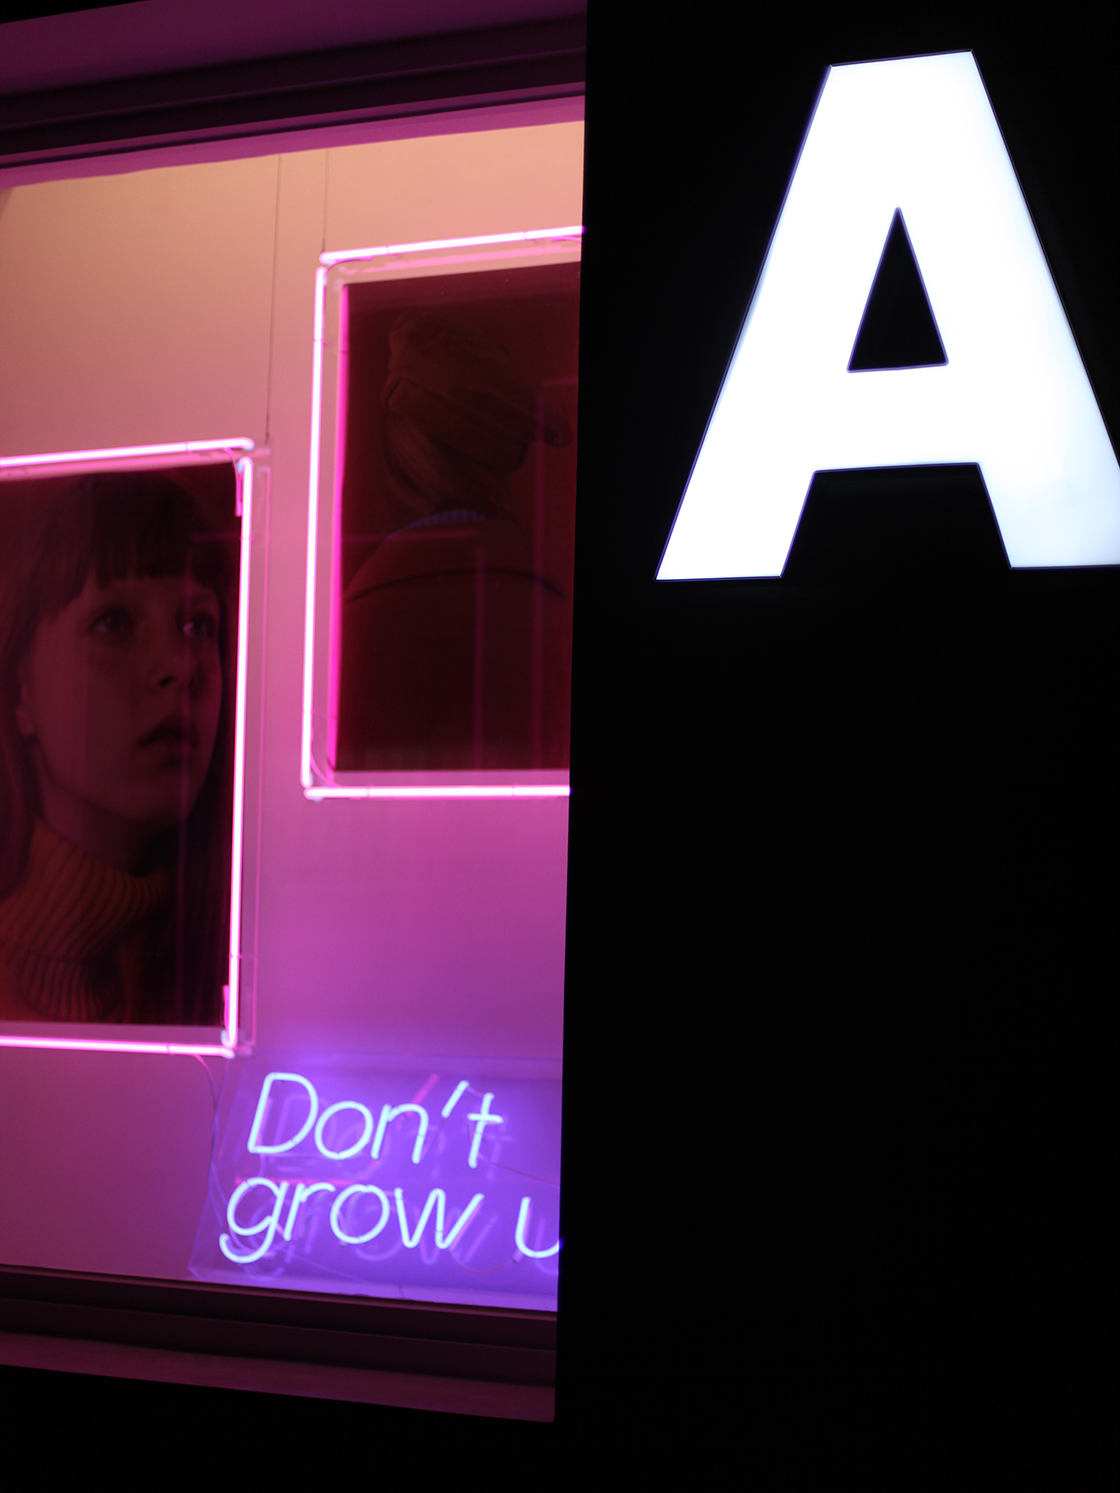 we could grow up 2gether: a visit to the ader error showroom